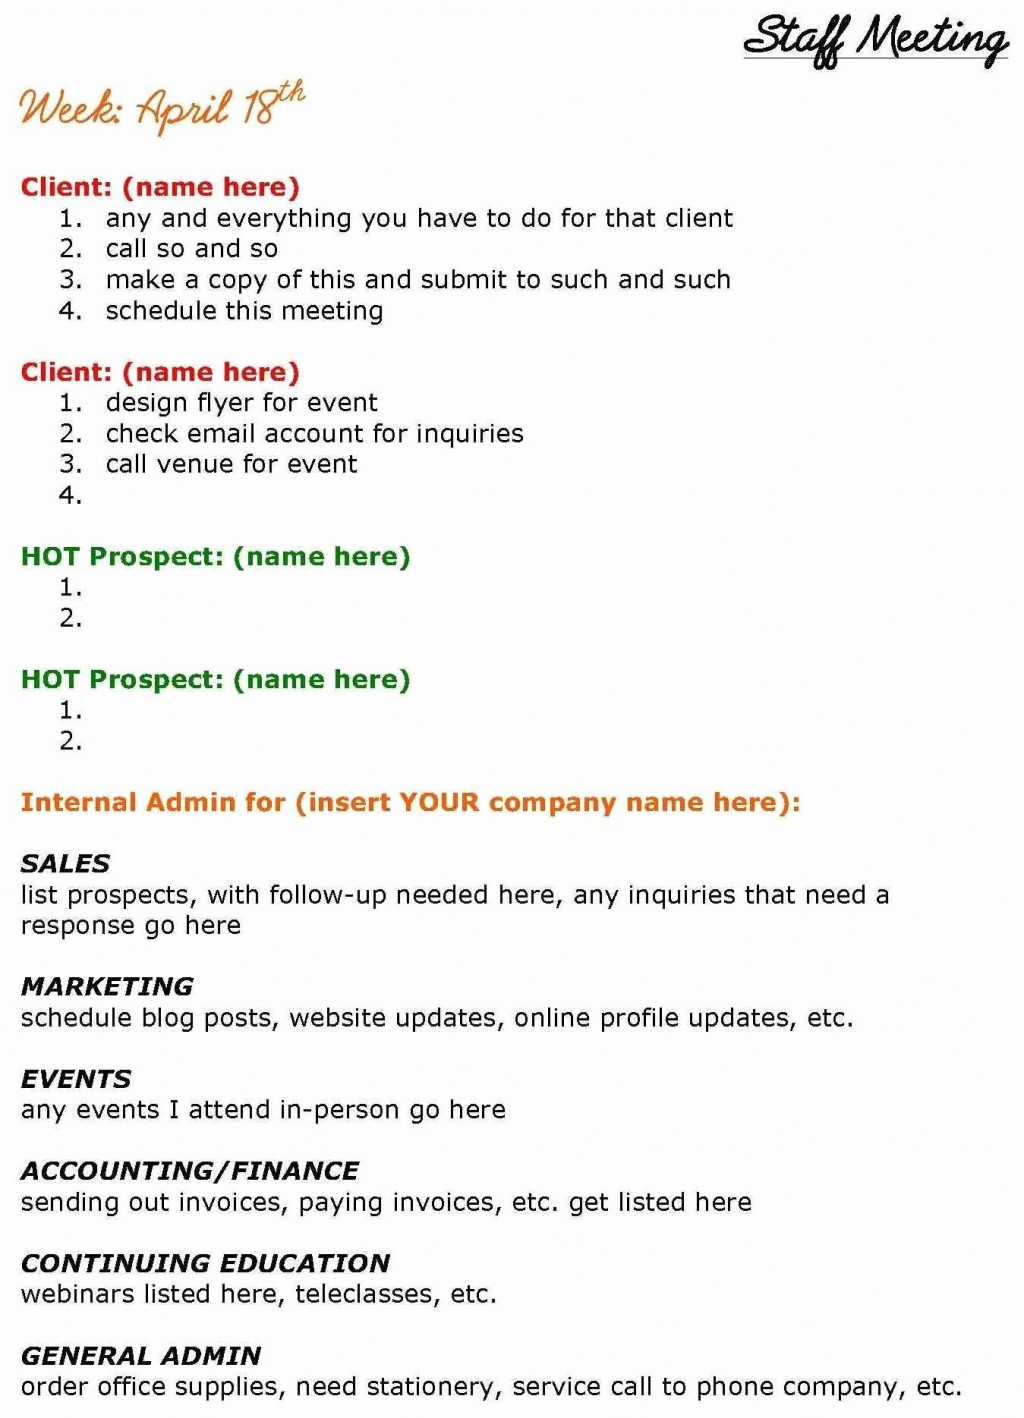 004 Remarkable Staff Meeting Agenda Template Inspiration  Example FormatLarge